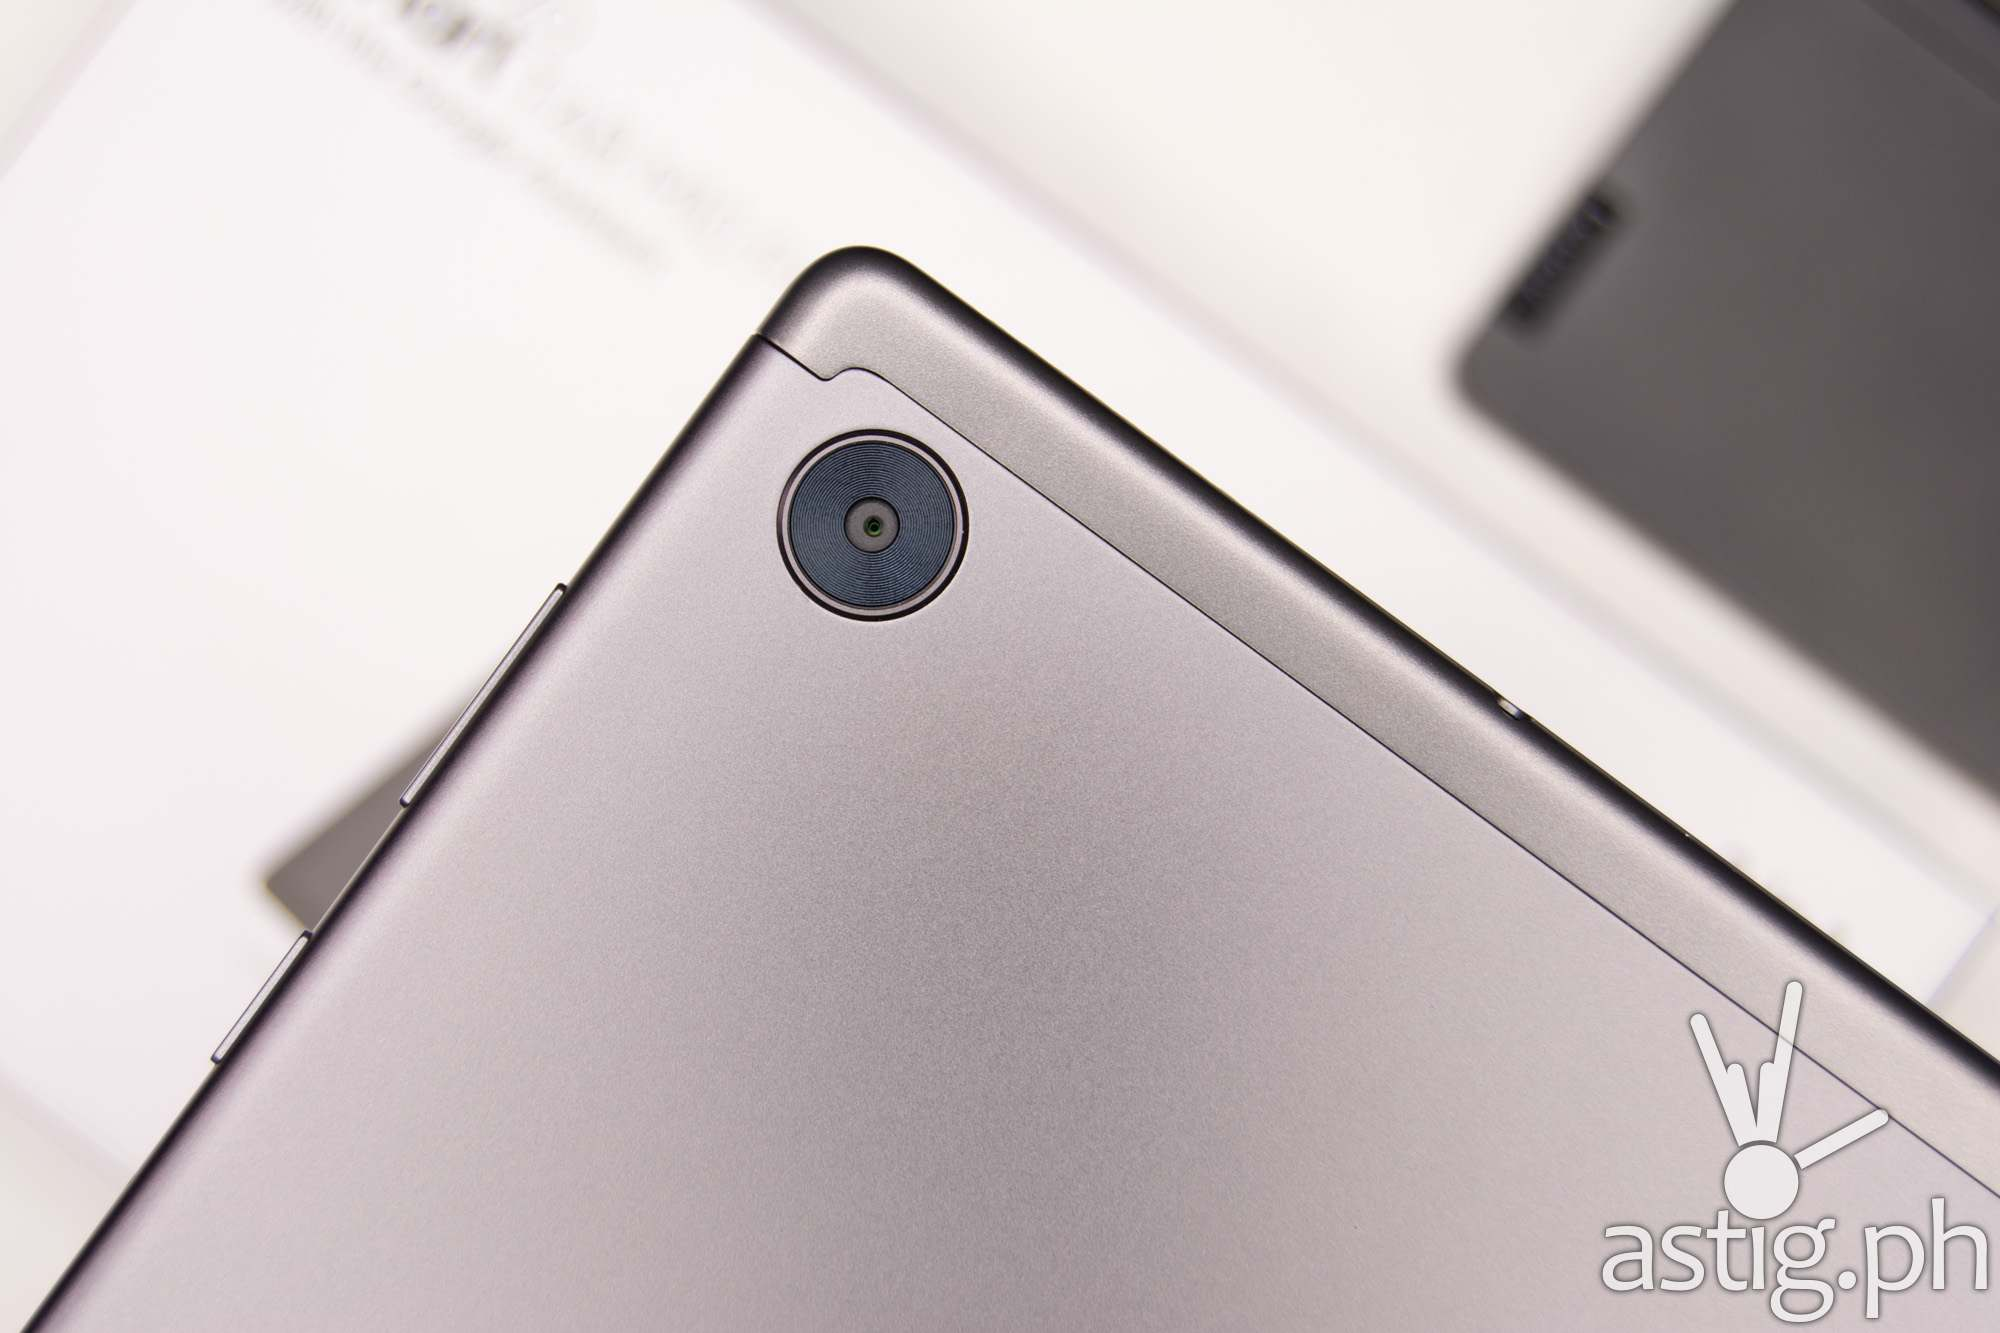 8MP rear camera - Lenovo Smart Tab M10 FHD Plus (Philippines)